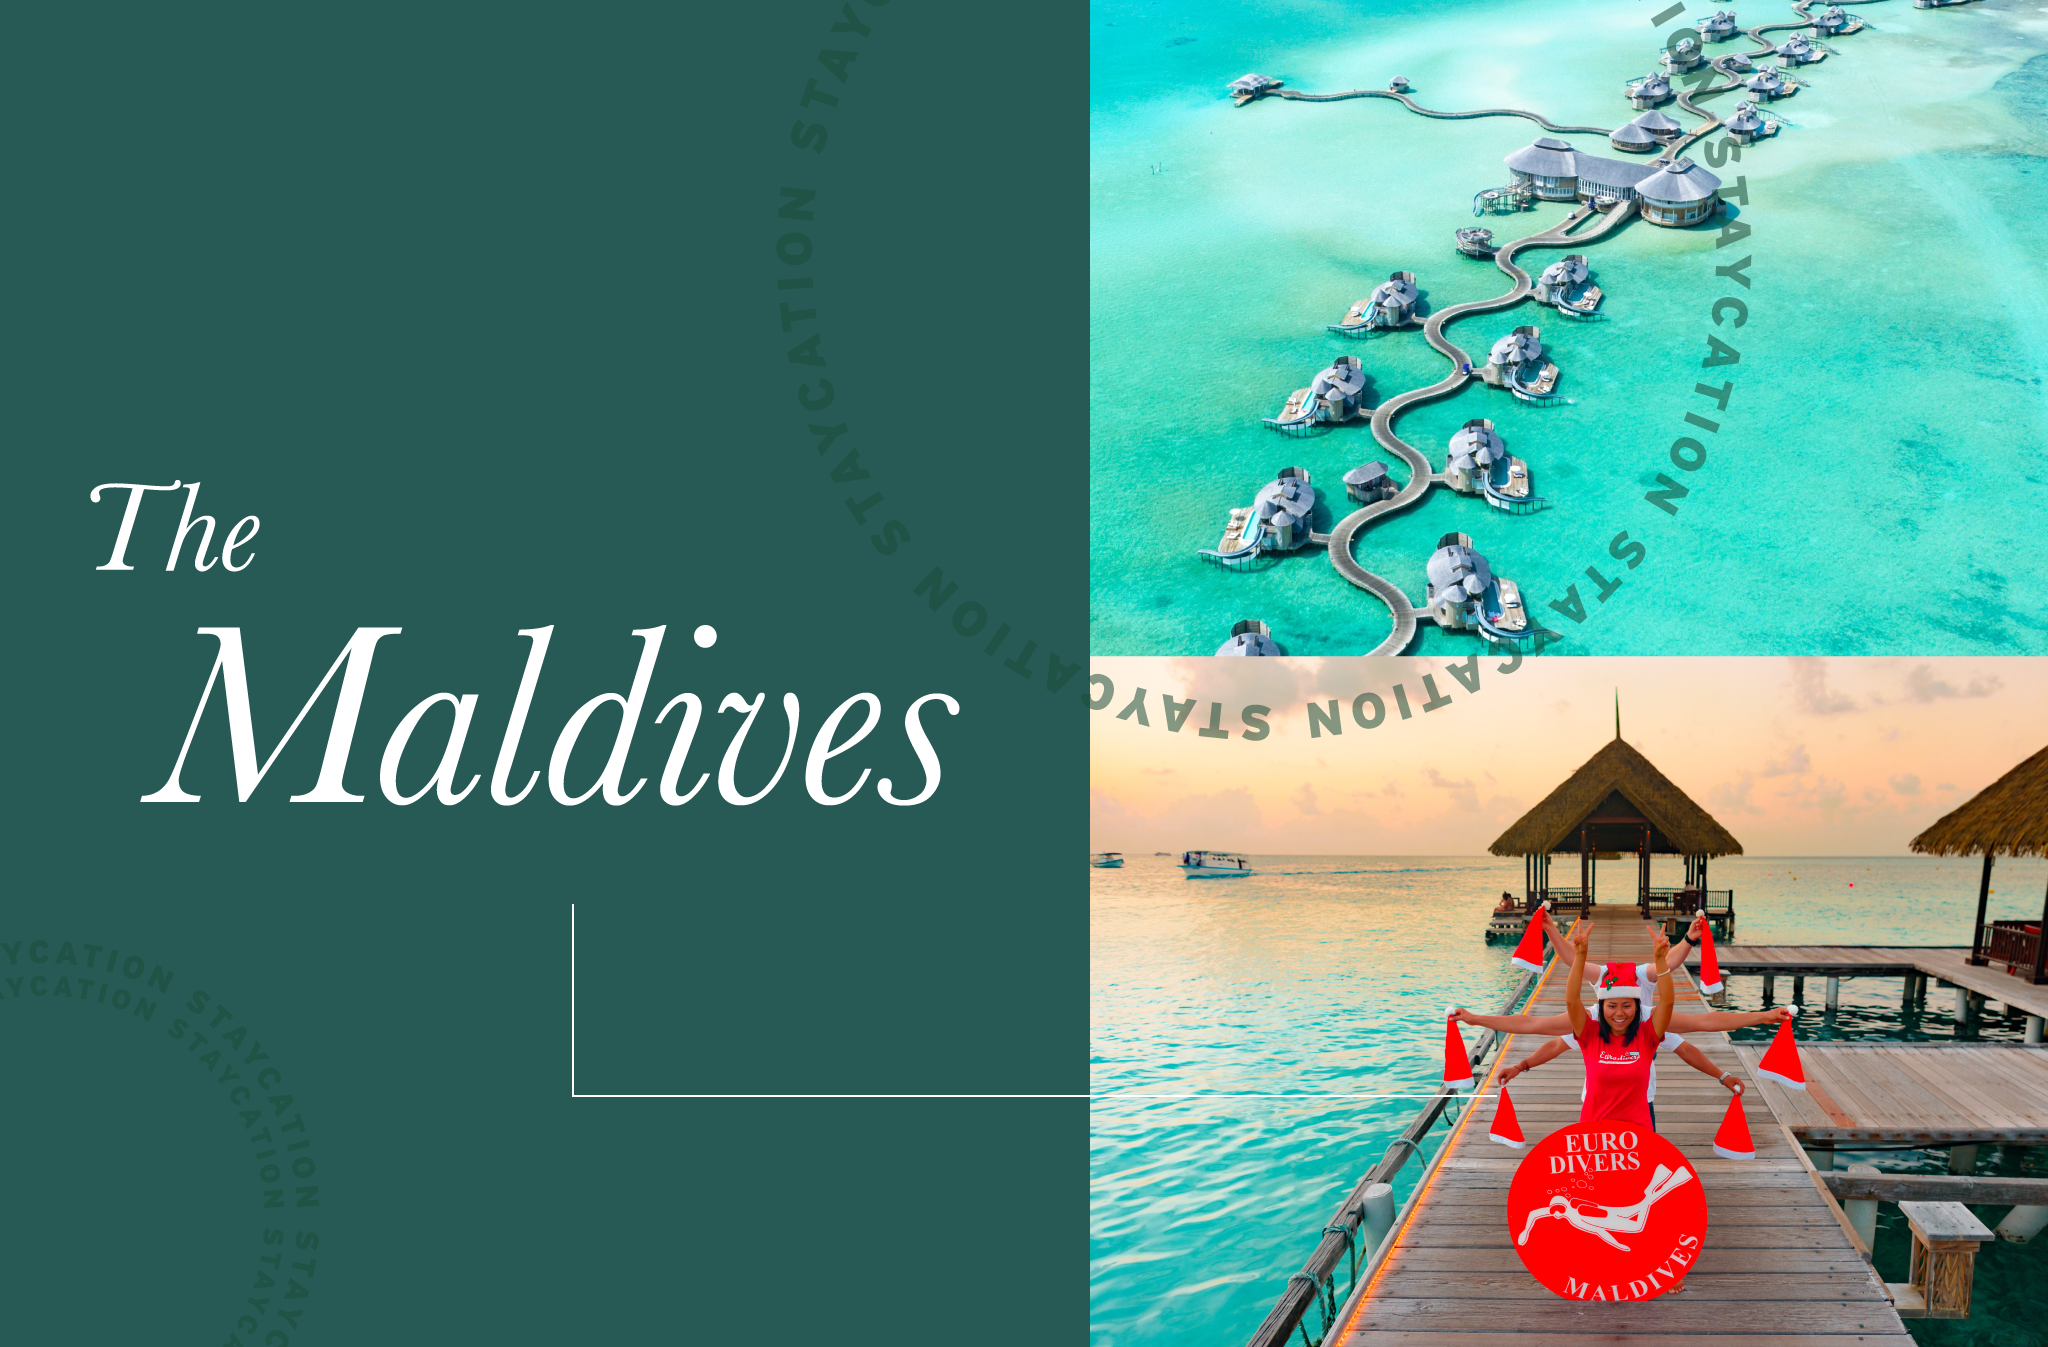 The Maldives: An Imaginary Vacation